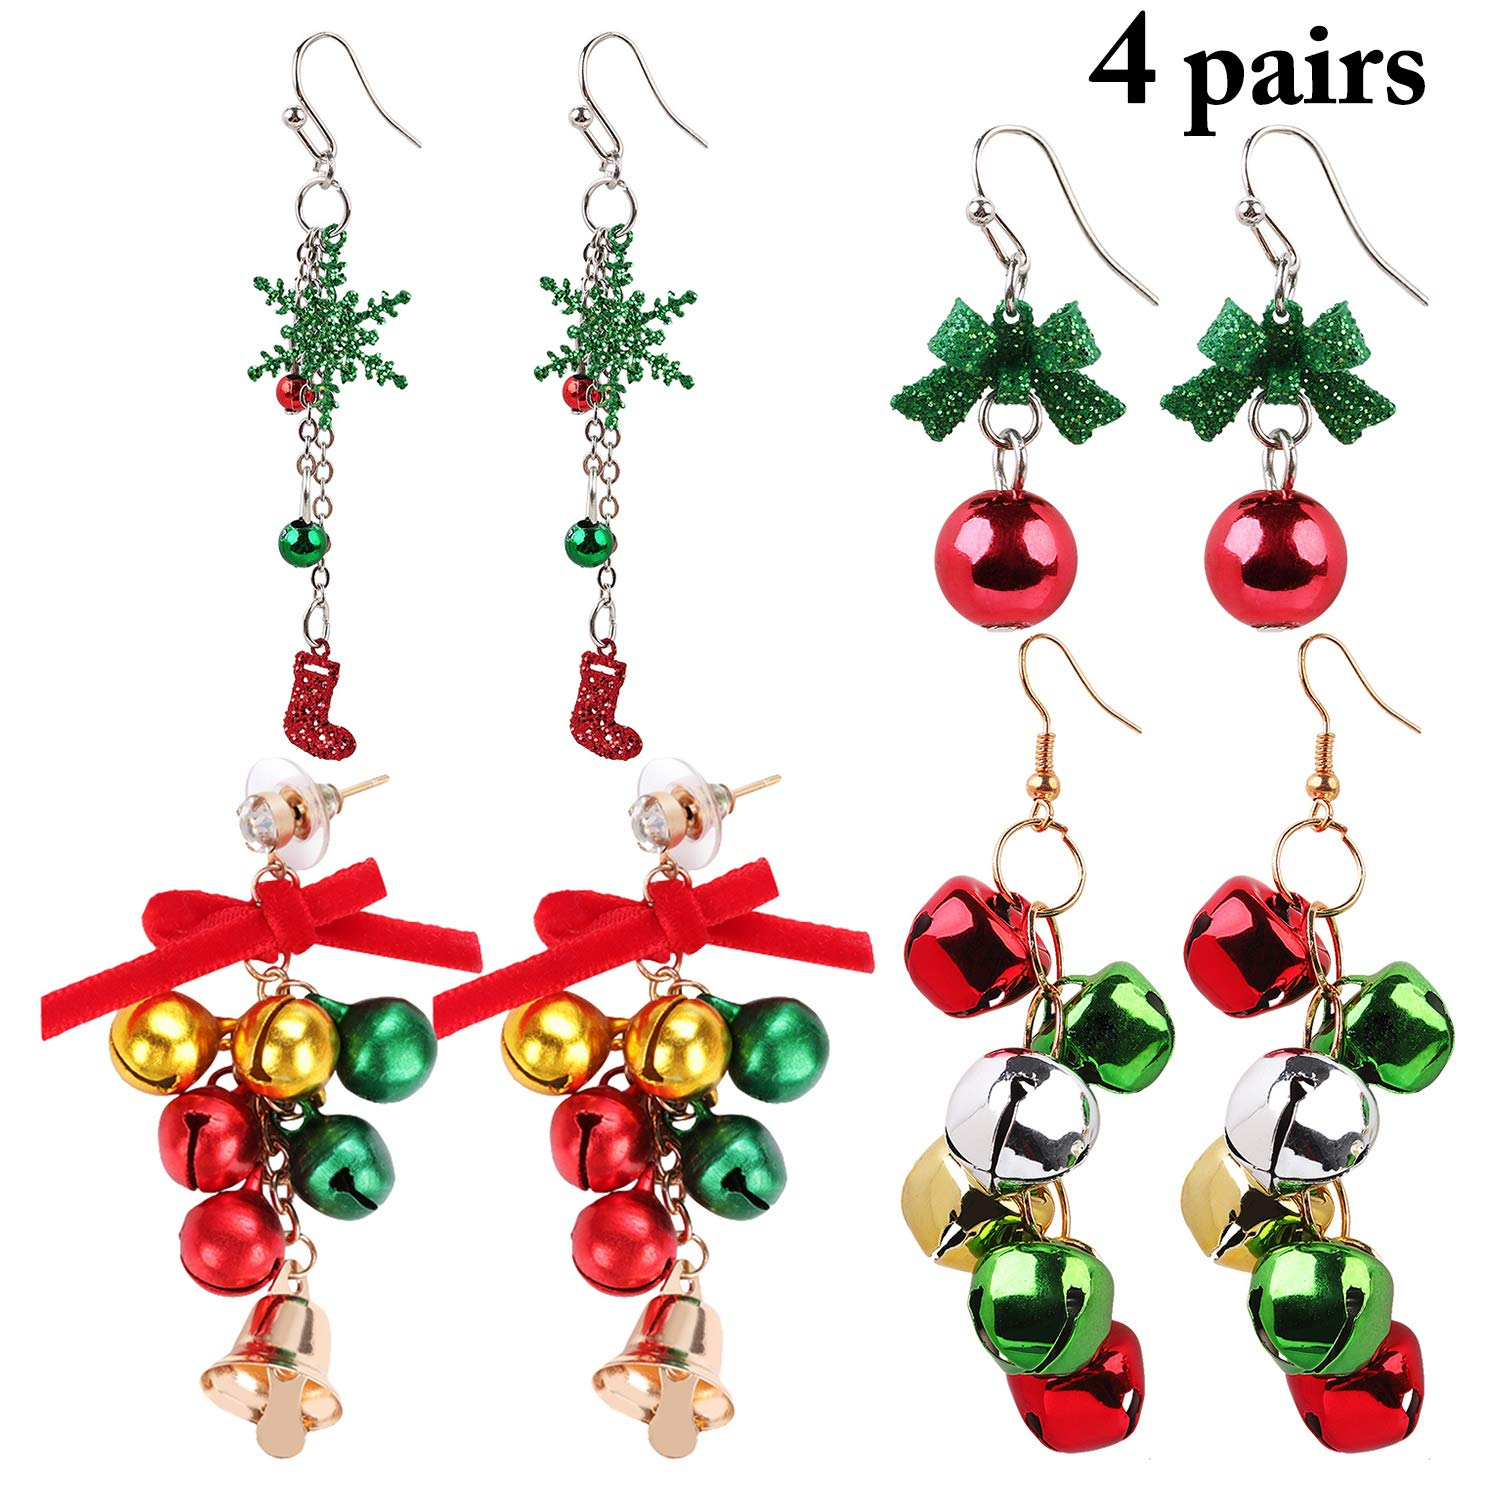 Christmas Jingle Bell Earrings,Kapmore 4 Pairs Christmas Earring Set Costume Jewelry Gift for Women Girls Cute Festive Xmas Drop Dangle Earrings Festive Holiday Birthday Party Gift